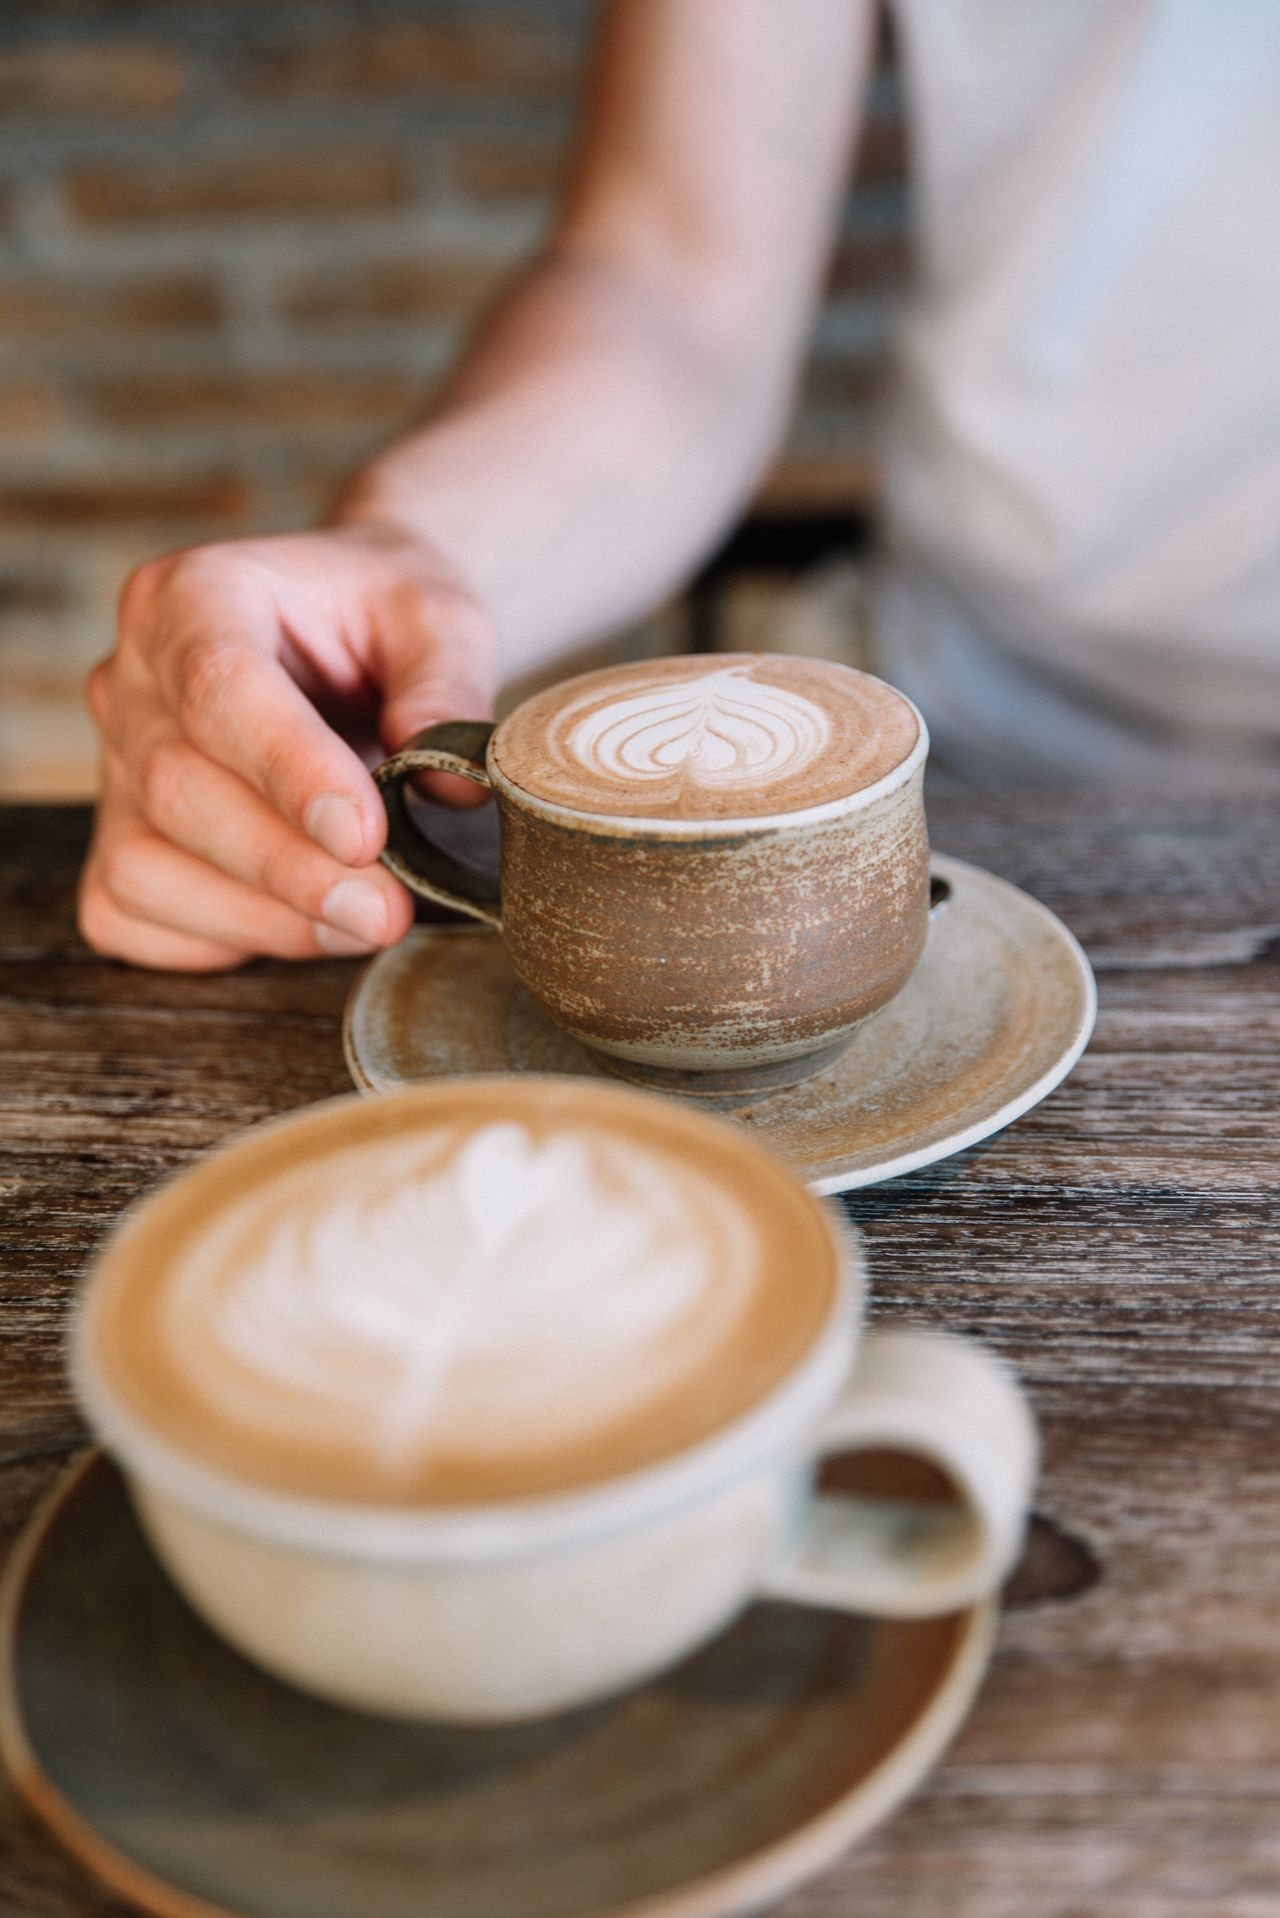 Coffee ☕️ Coffee - Drink Drink Coffee Cup Table One Person Human Hand Frothy Drink Froth Art Human Body Part Latte Cafe Real People Holding EyeEm Best Edits EyeEm Gallery EyeEm Best Shots EyeEmBestPics Date Coffee Time Coffee Break Latte Art Live For The Story